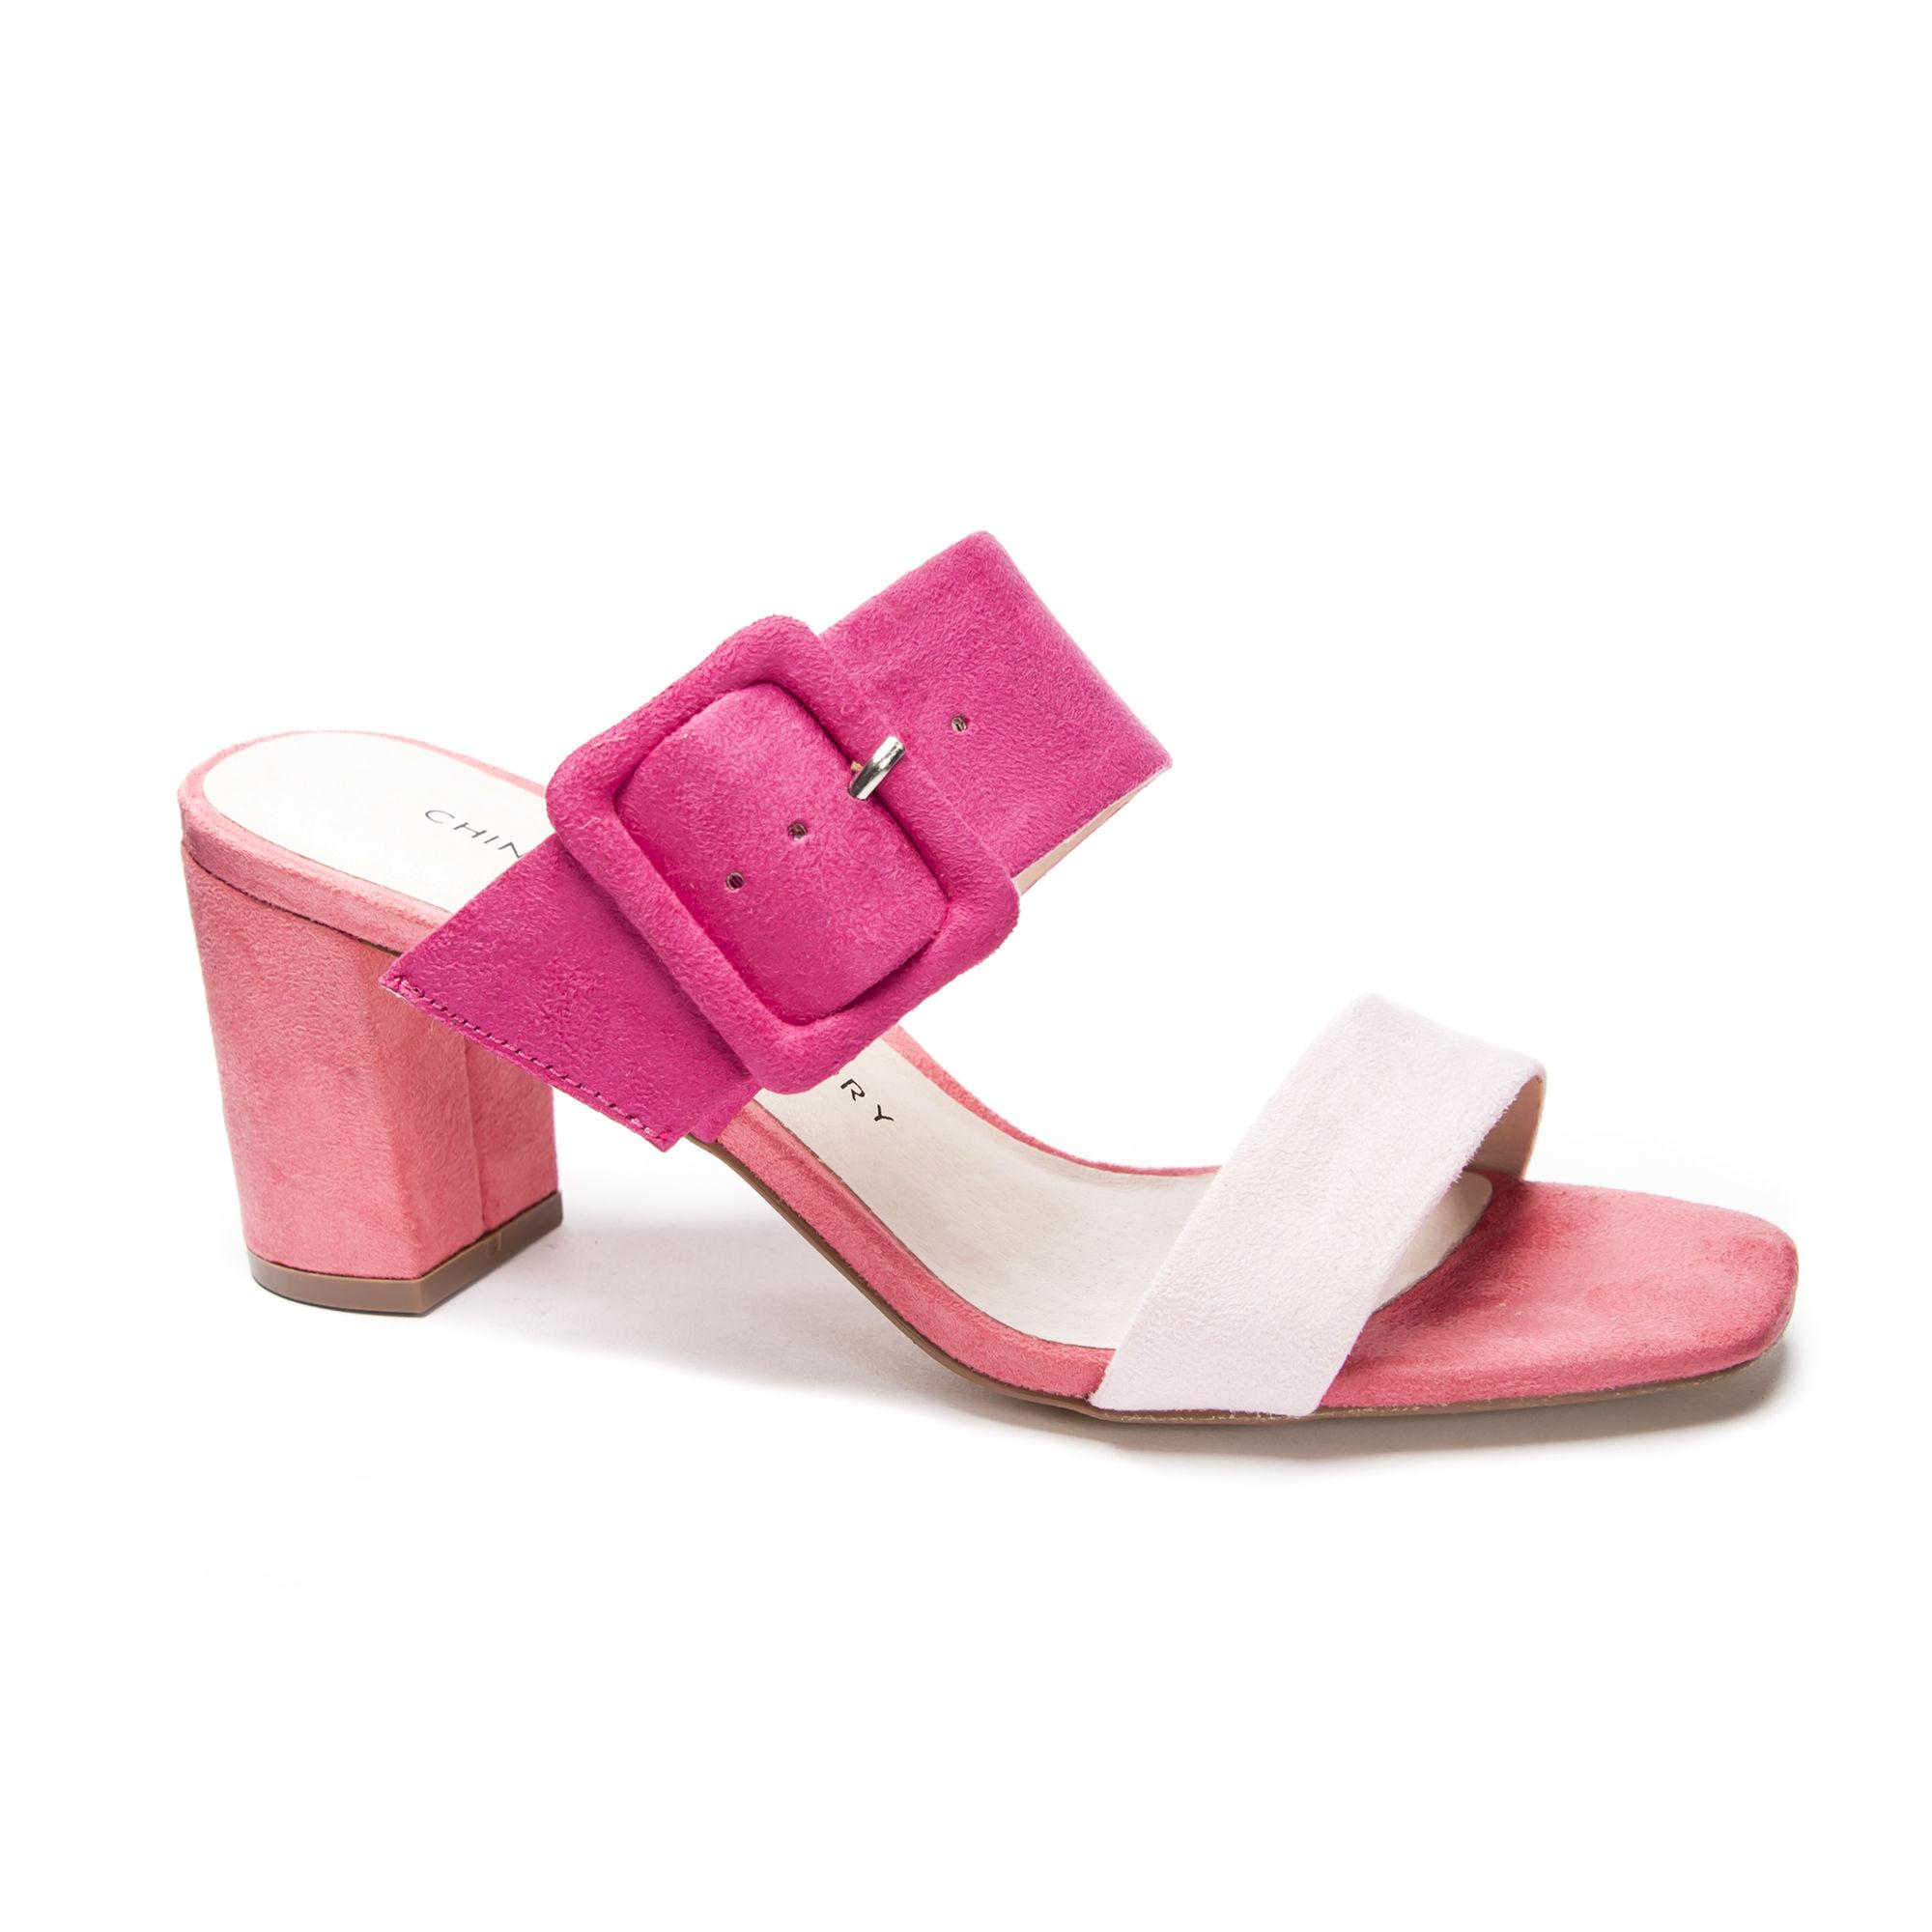 095d3eb3866 Lyst - Chinese Laundry Yippy Slide Sandal in Pink